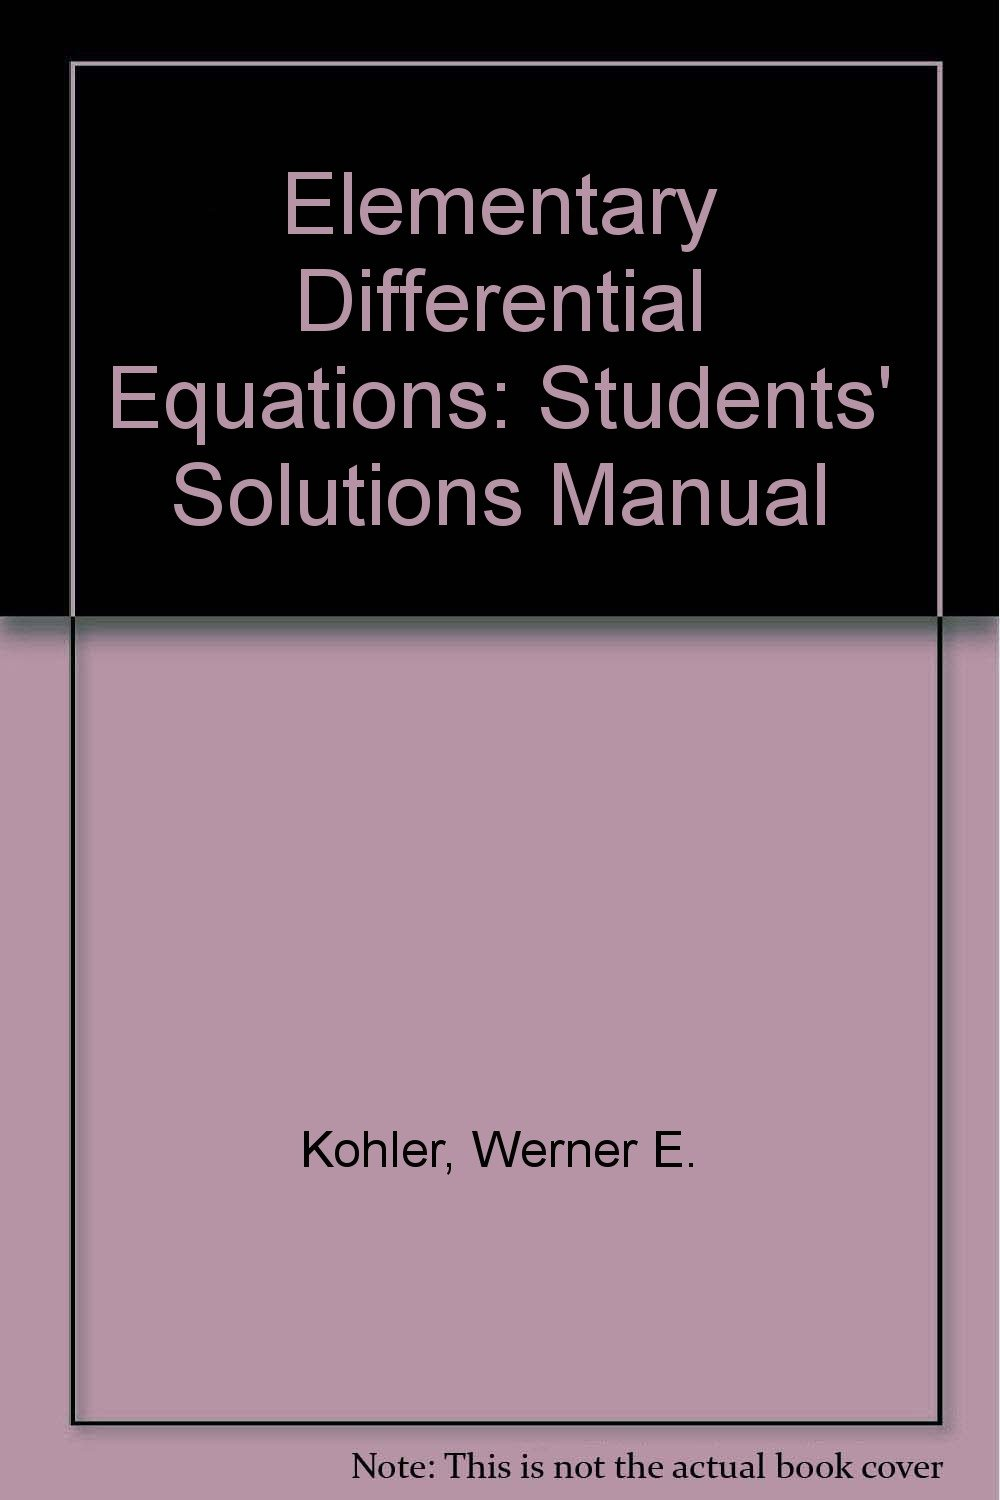 Elementary Differential Equations: Students' Solutions Manual: Werner E.  Kohler, Lee W. Johnson: 9780201770322: Amazon.com: Books